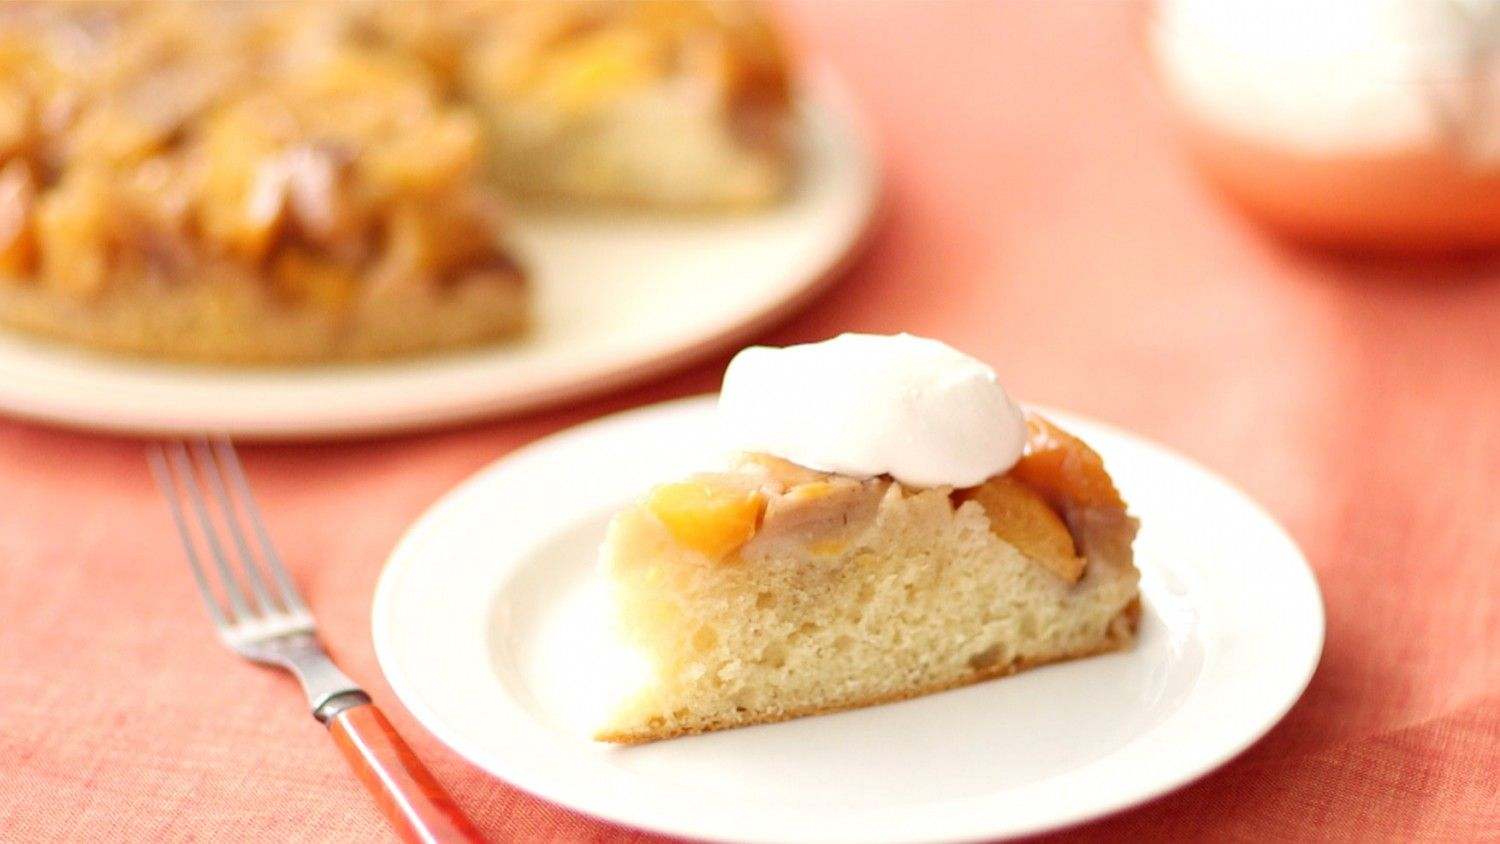 Sarah Carey uses fresh nectarines for this fruity and delicious Nectarine Upside Down Cake. It's the perfect dessert for your next weekend brunch, enjoy!